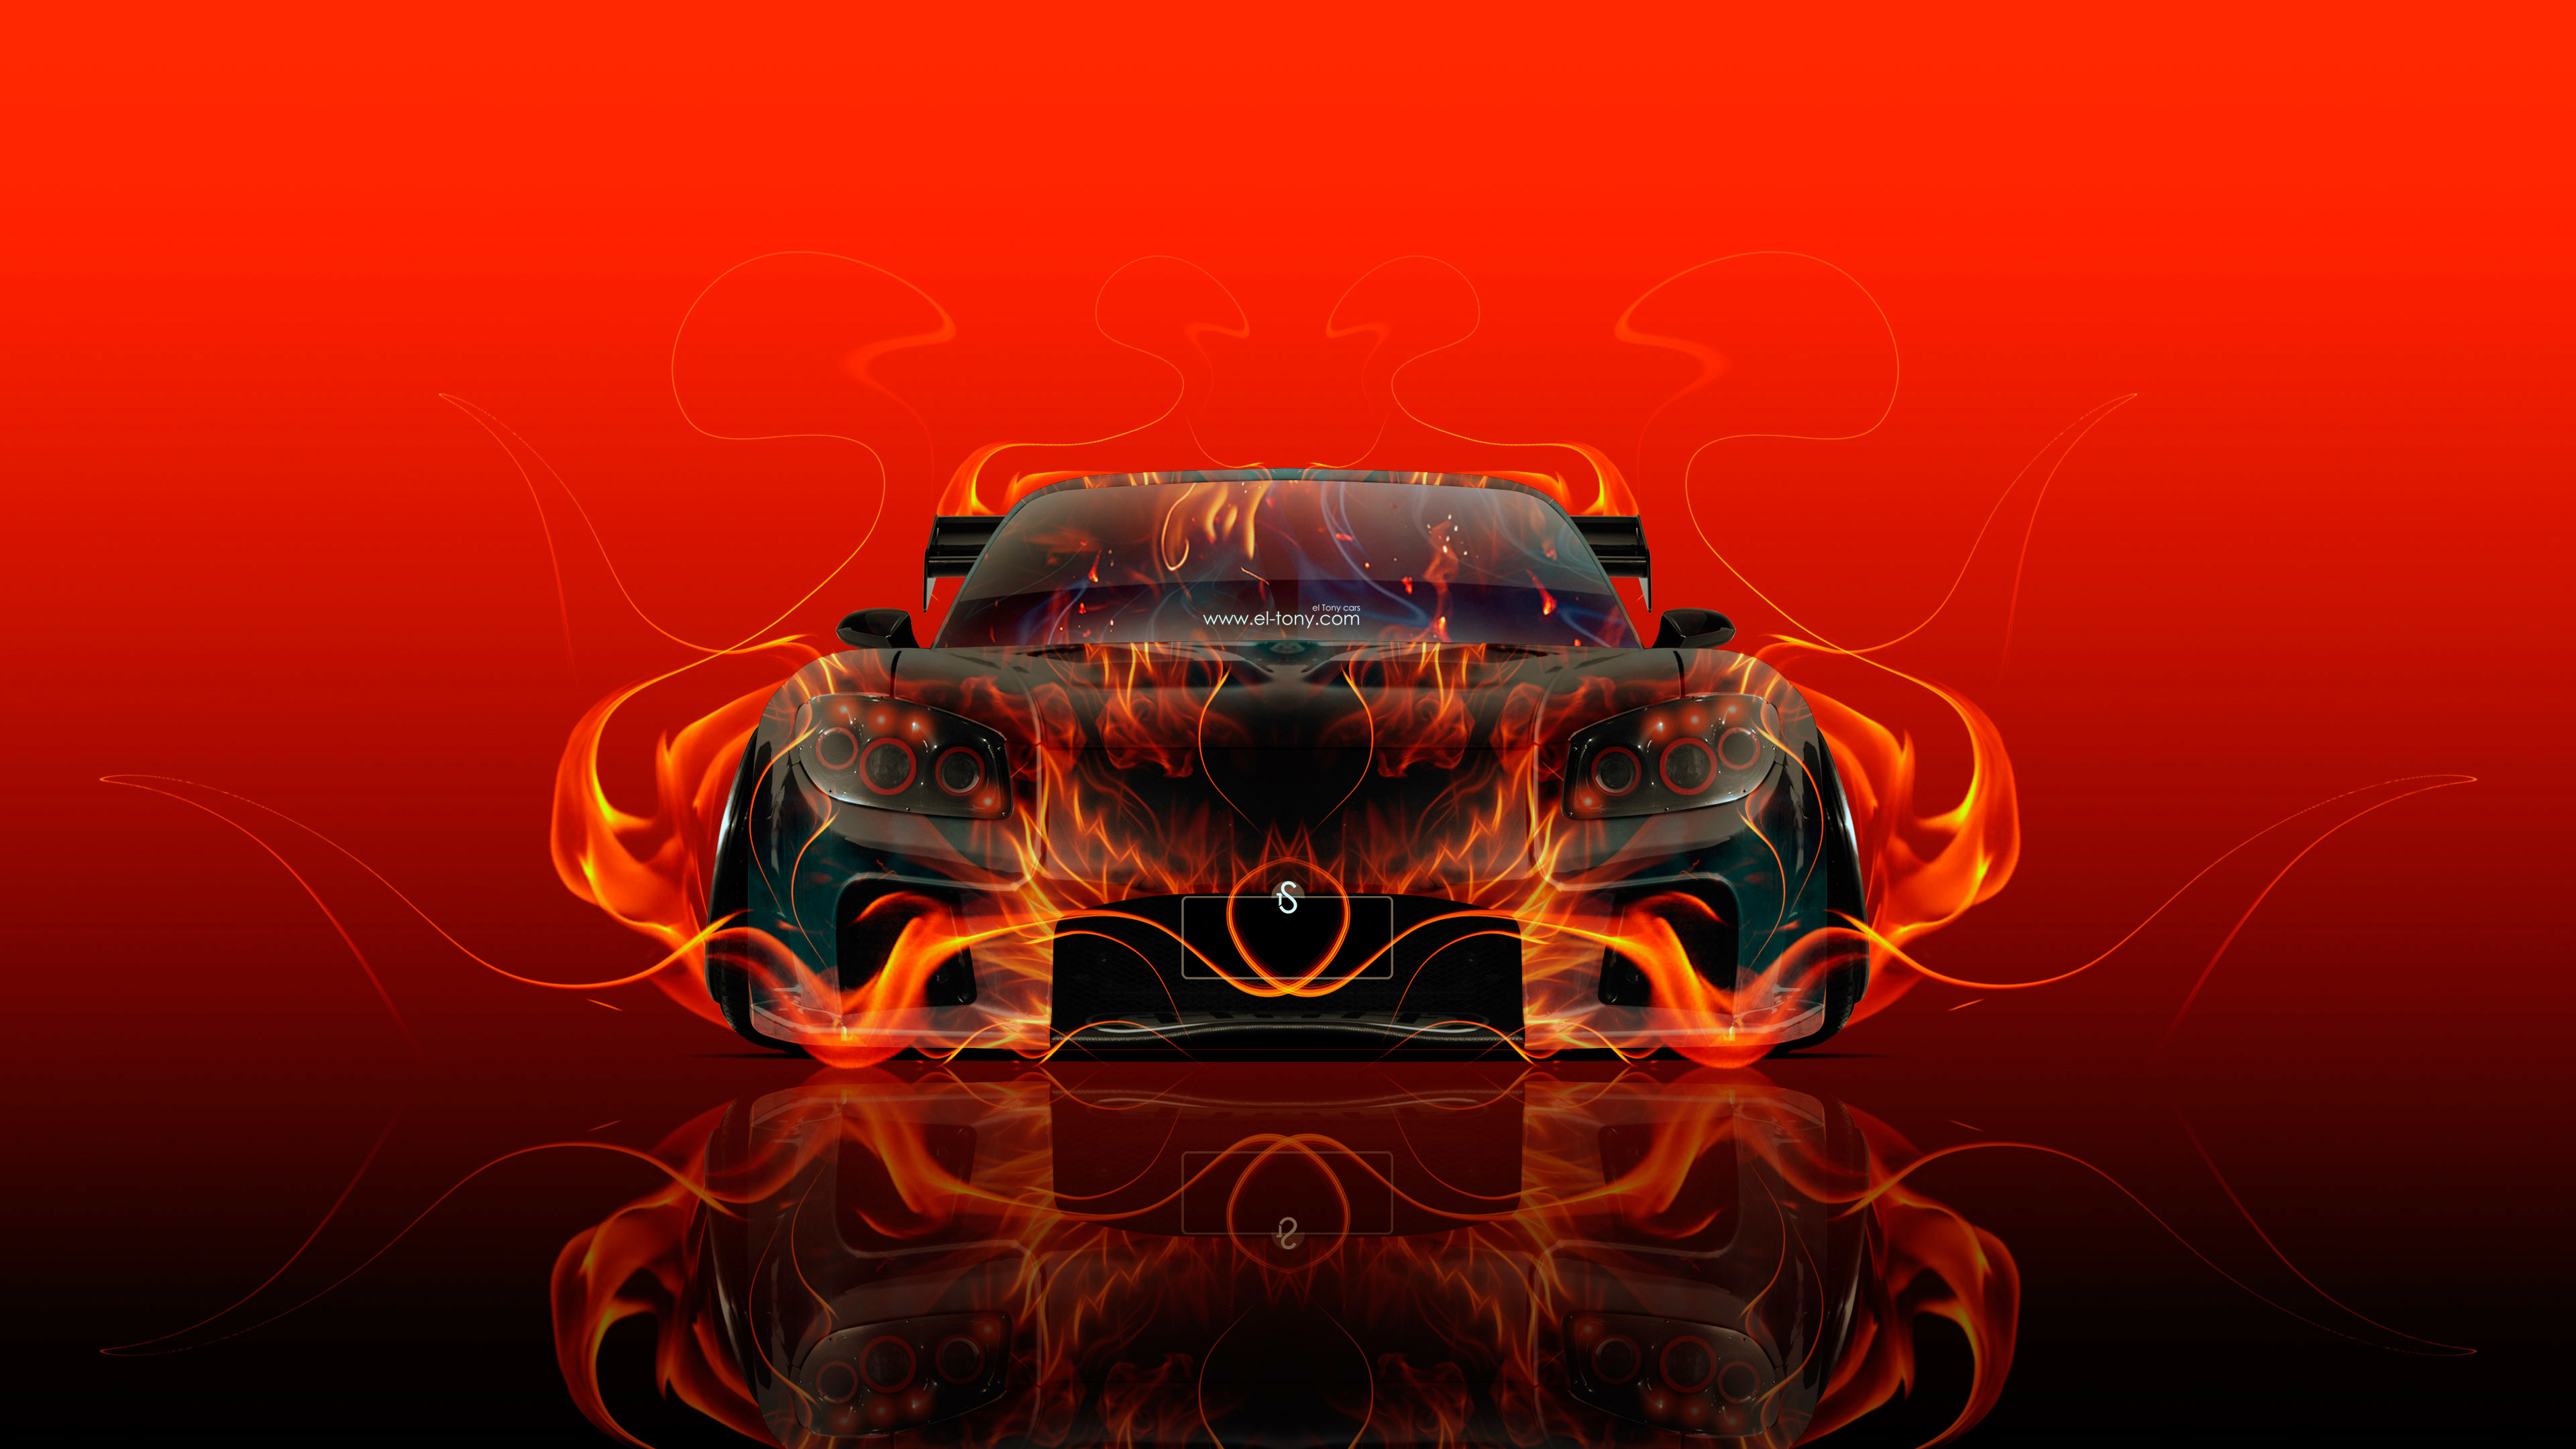 3840x2160 ... Mazda RX7 VeilSide JDM Front Fire Car 2015 Wallpapers El Tony  Cars